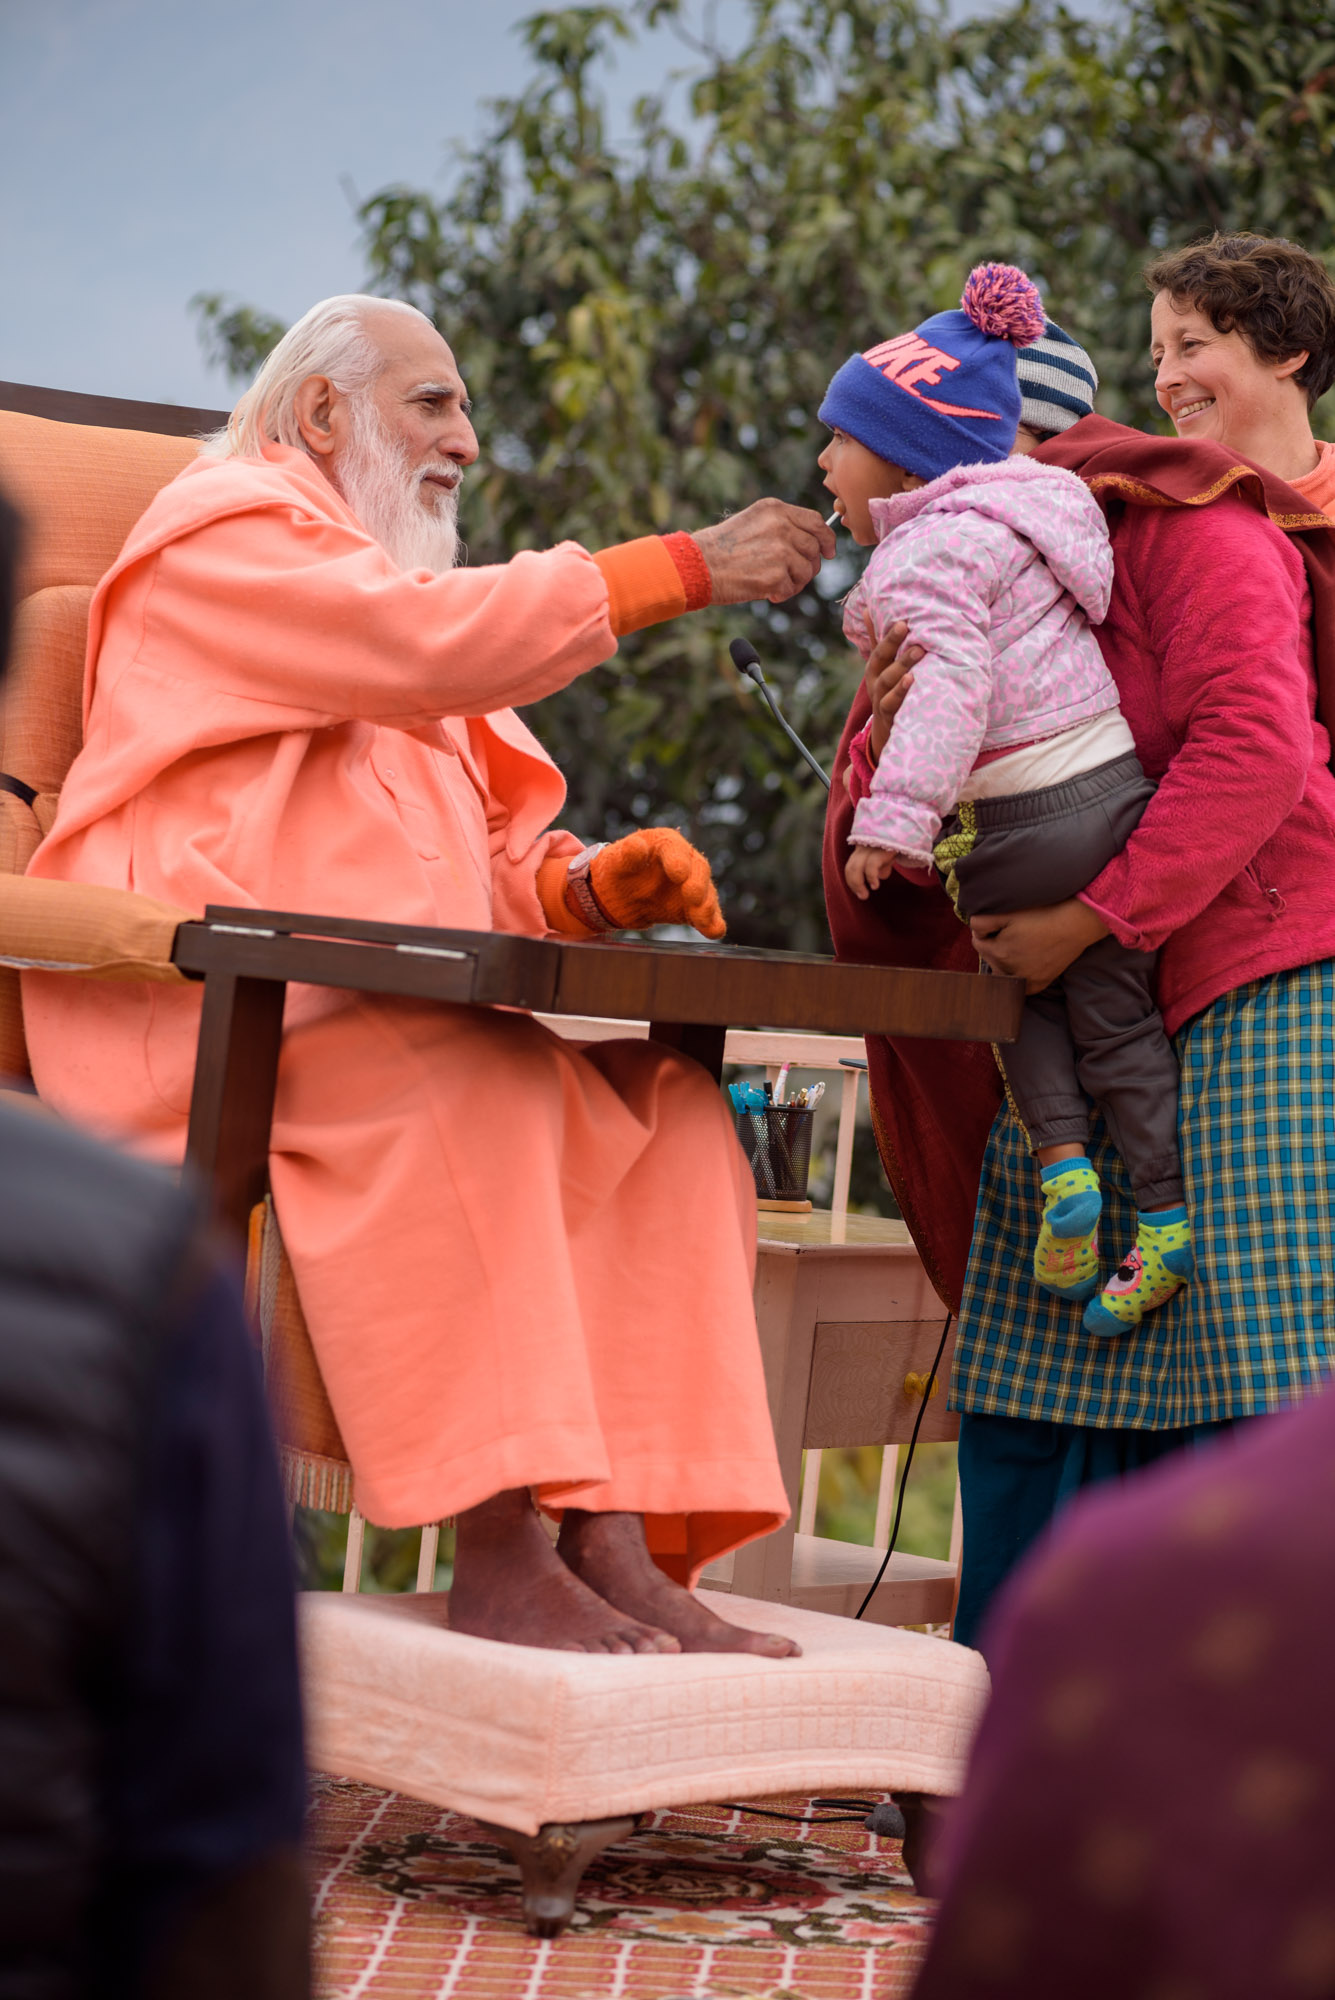 Swamiji feeding a lollipop to a child